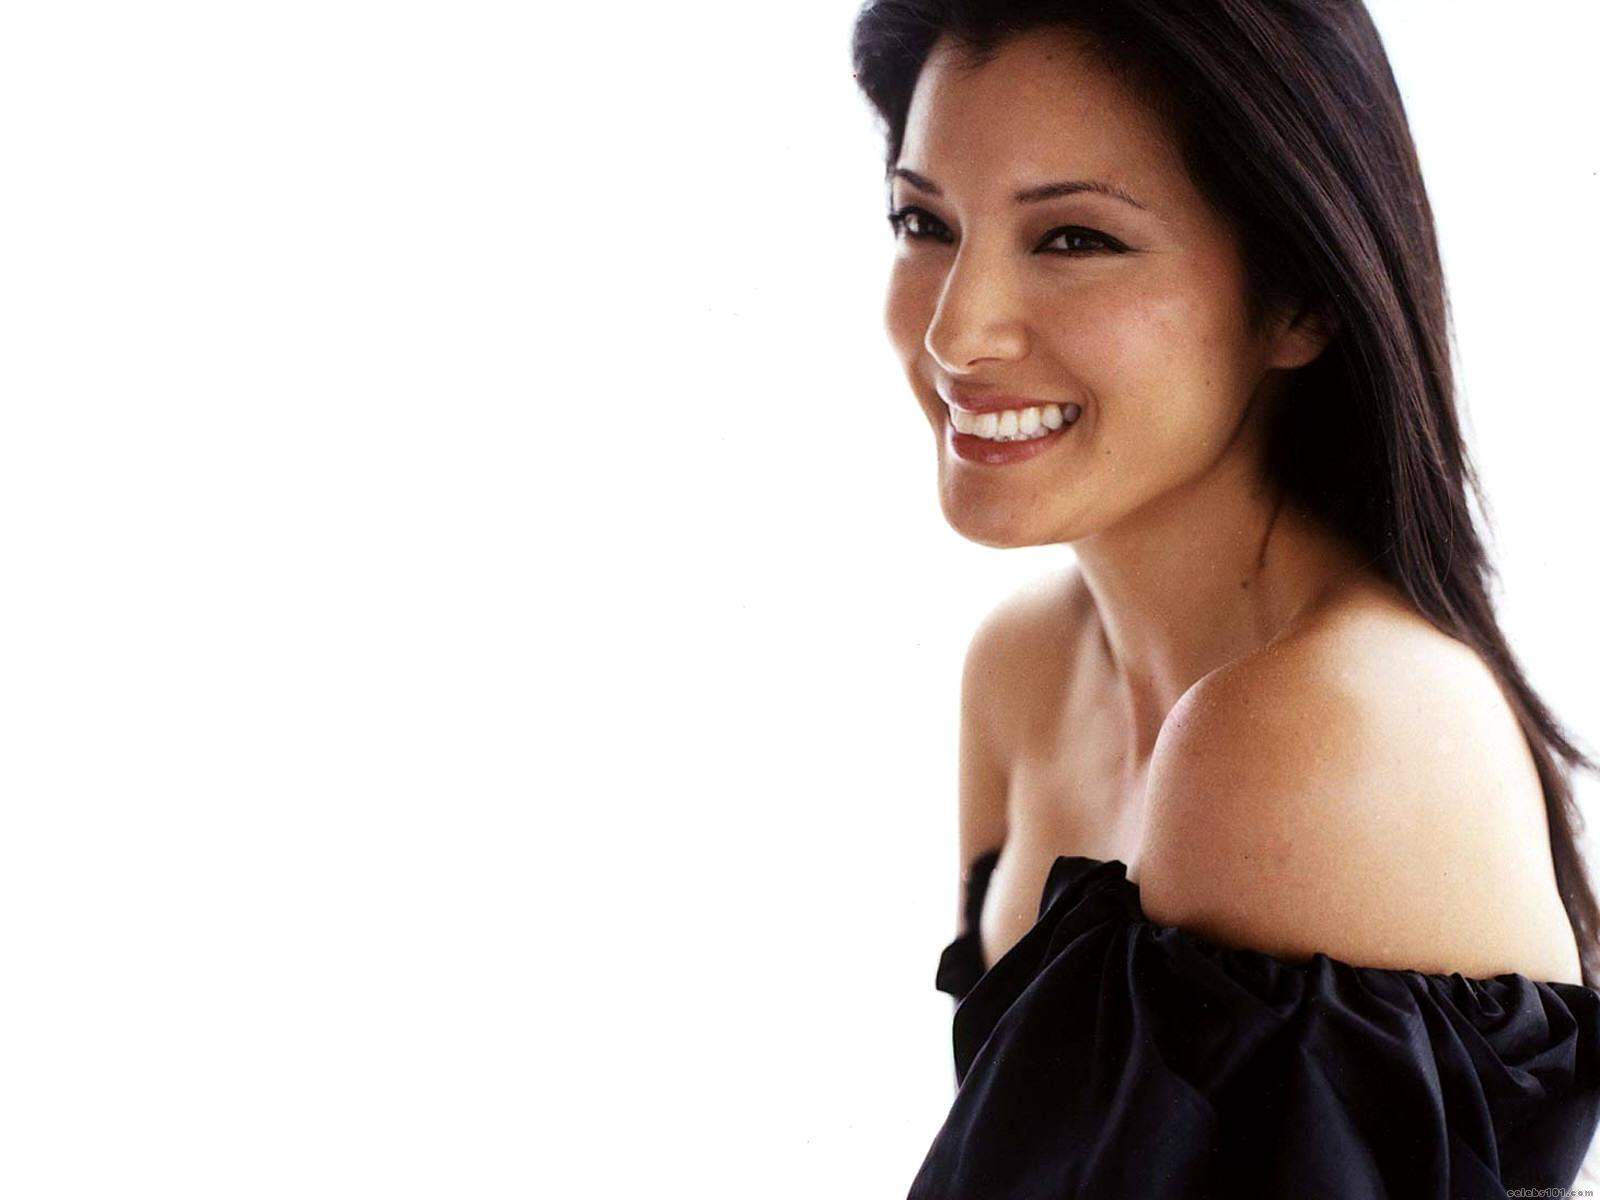 Kelly Hu Photos 2021 - Nude Celebrity Pictures